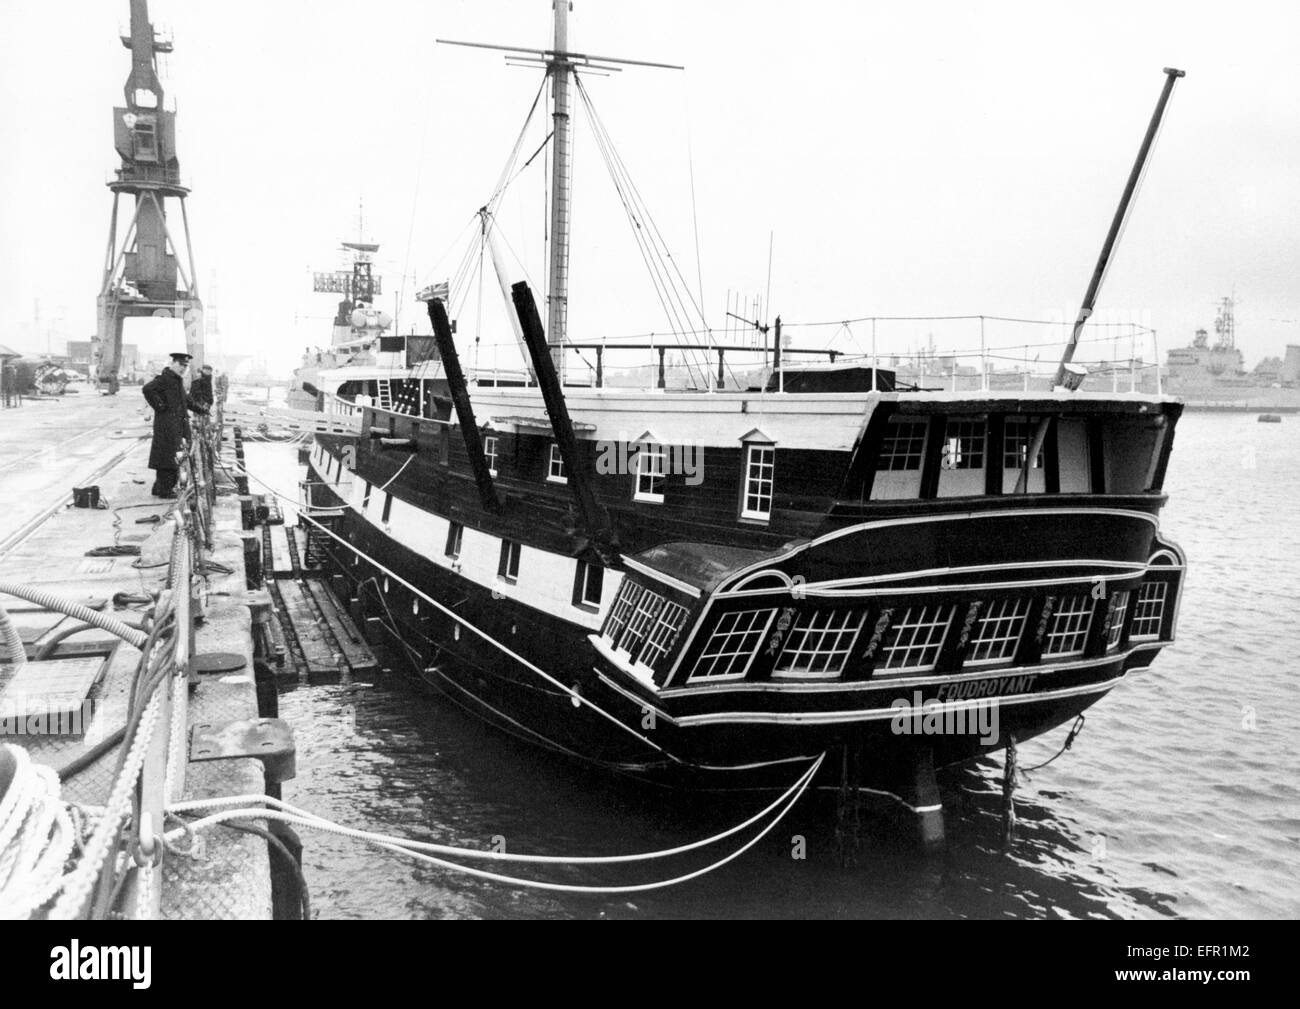 AJAXNETPHOTO. - 9th NOV, 1969. PORTSMOUTH, ENGLAND. - WOODEN WALL DOCKED-  T.S. FOUDROYANT (EX TRINCOMALEE) UNDERGOING - Stock Image